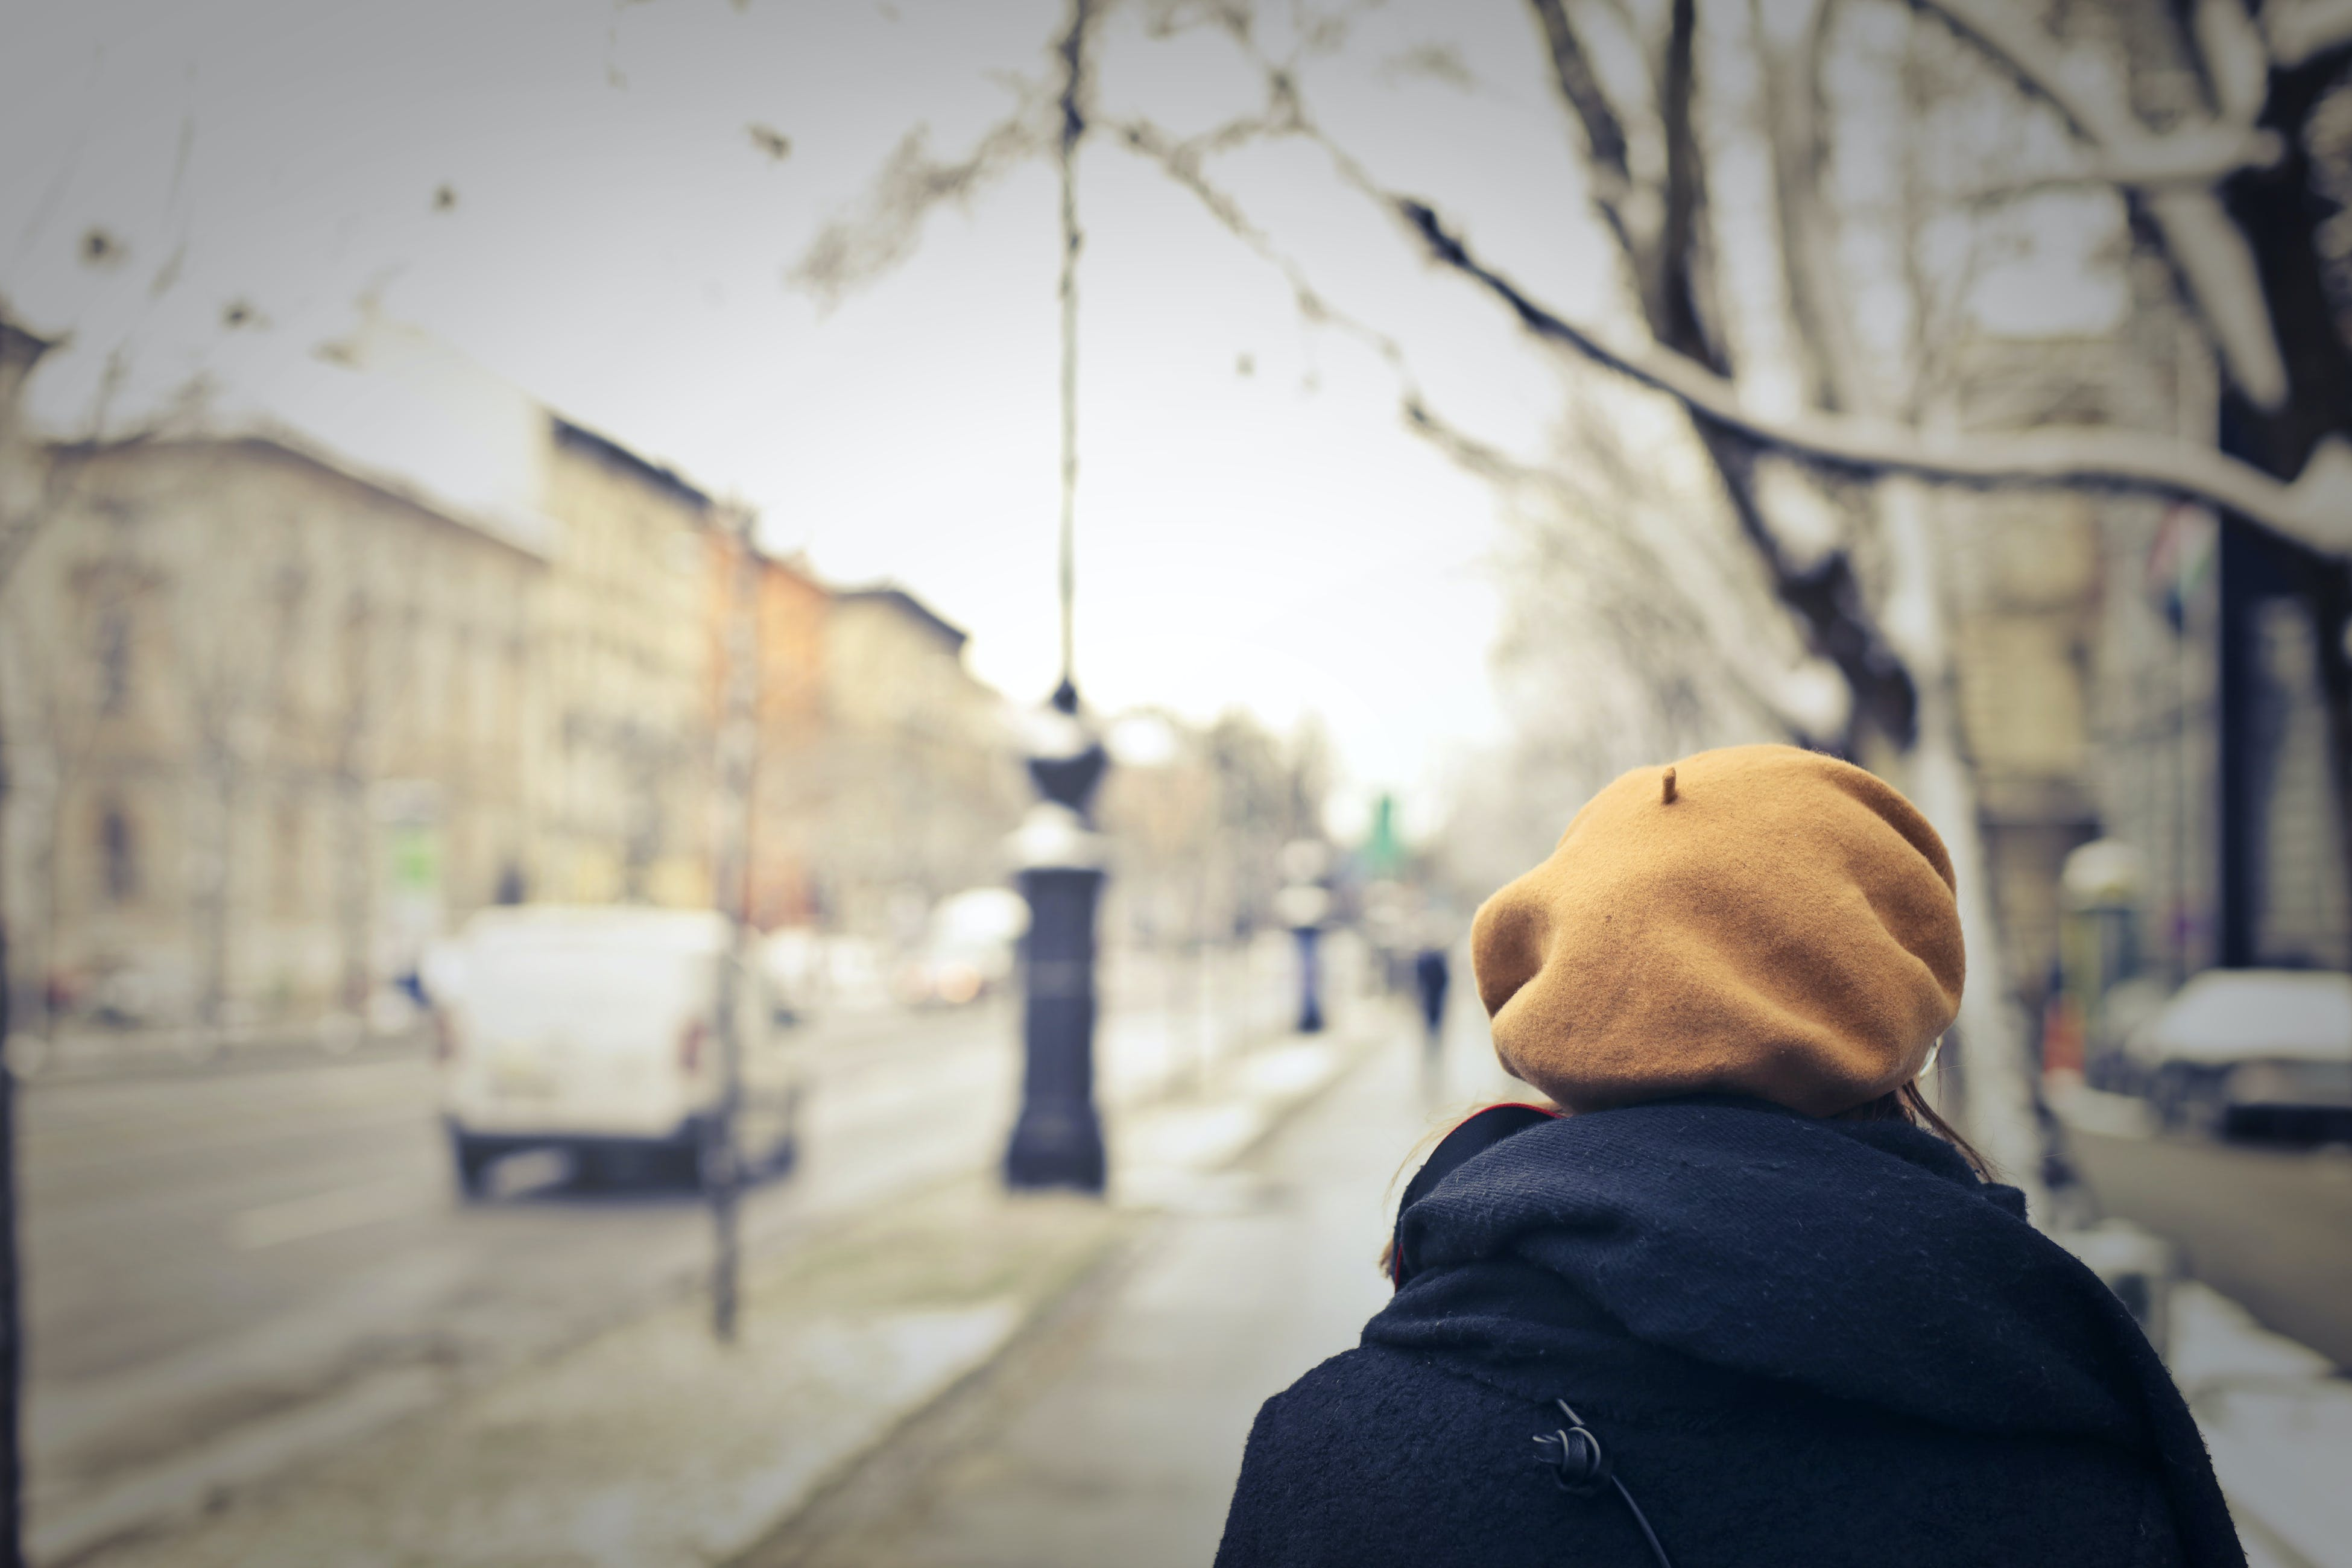 Person With Brown Hat Walking on Street